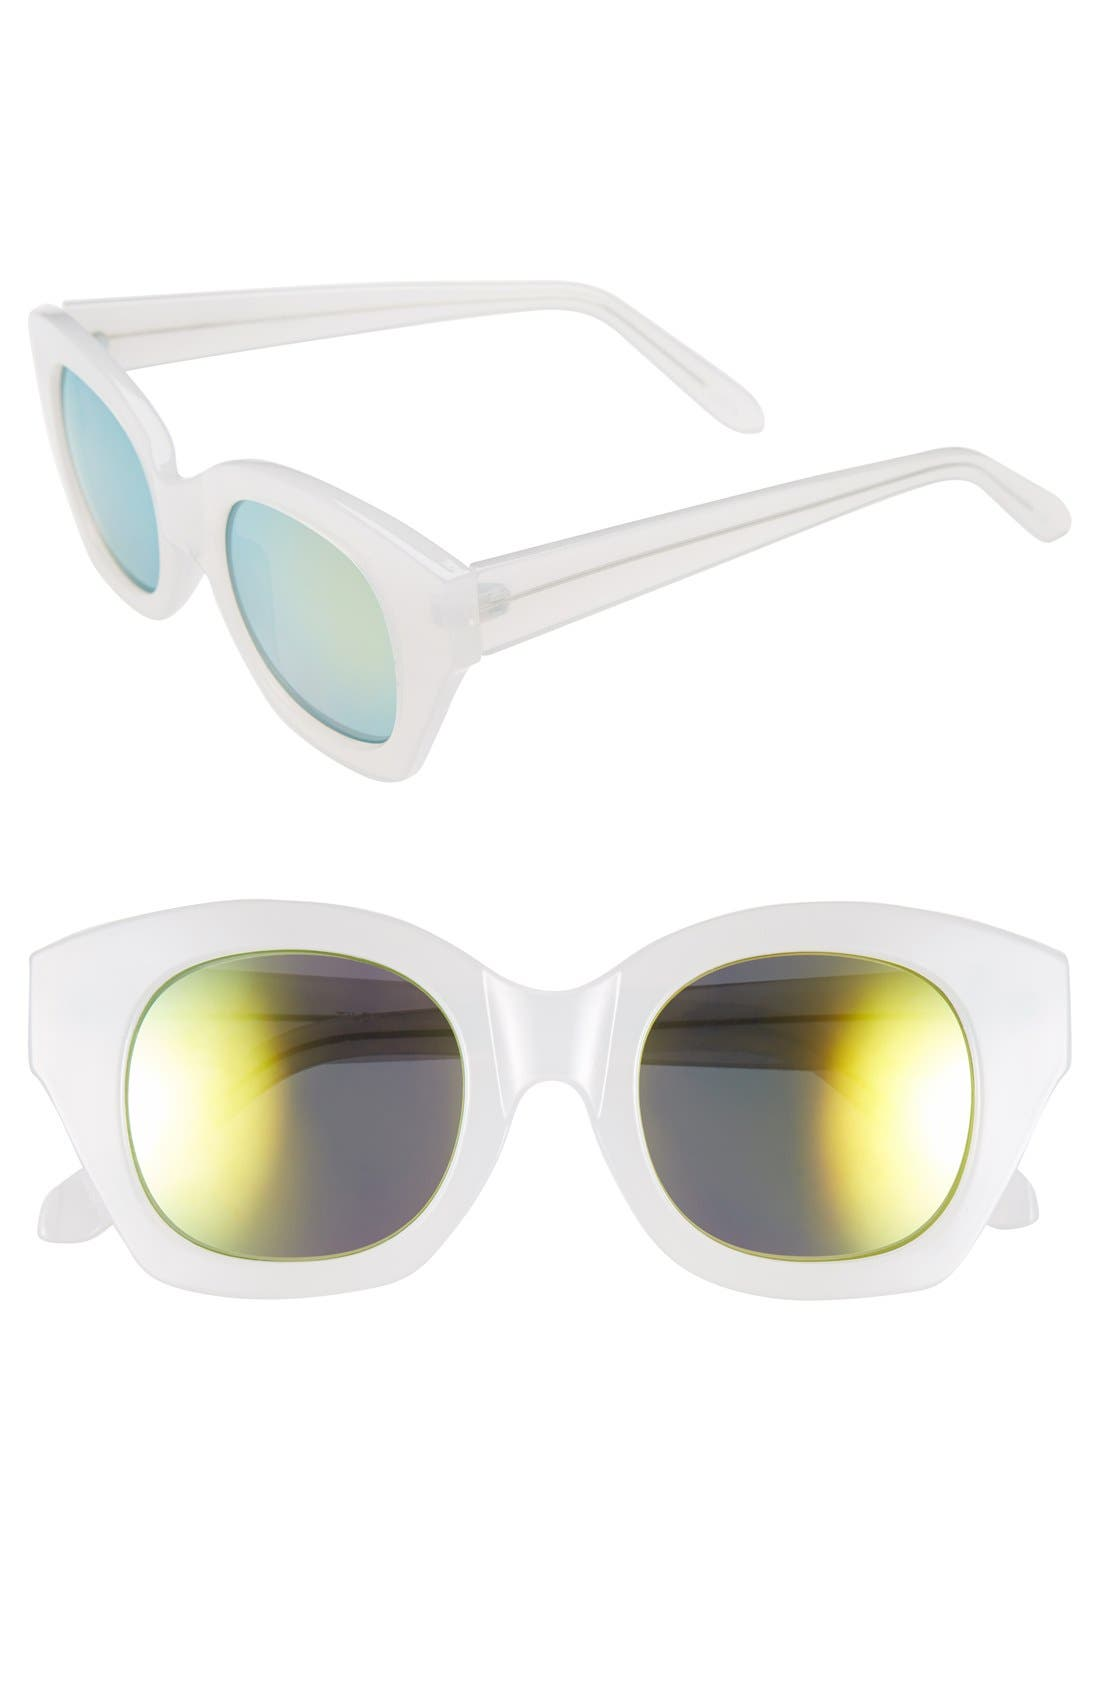 Main Image - Tildon 45mm Retro Sunglasses